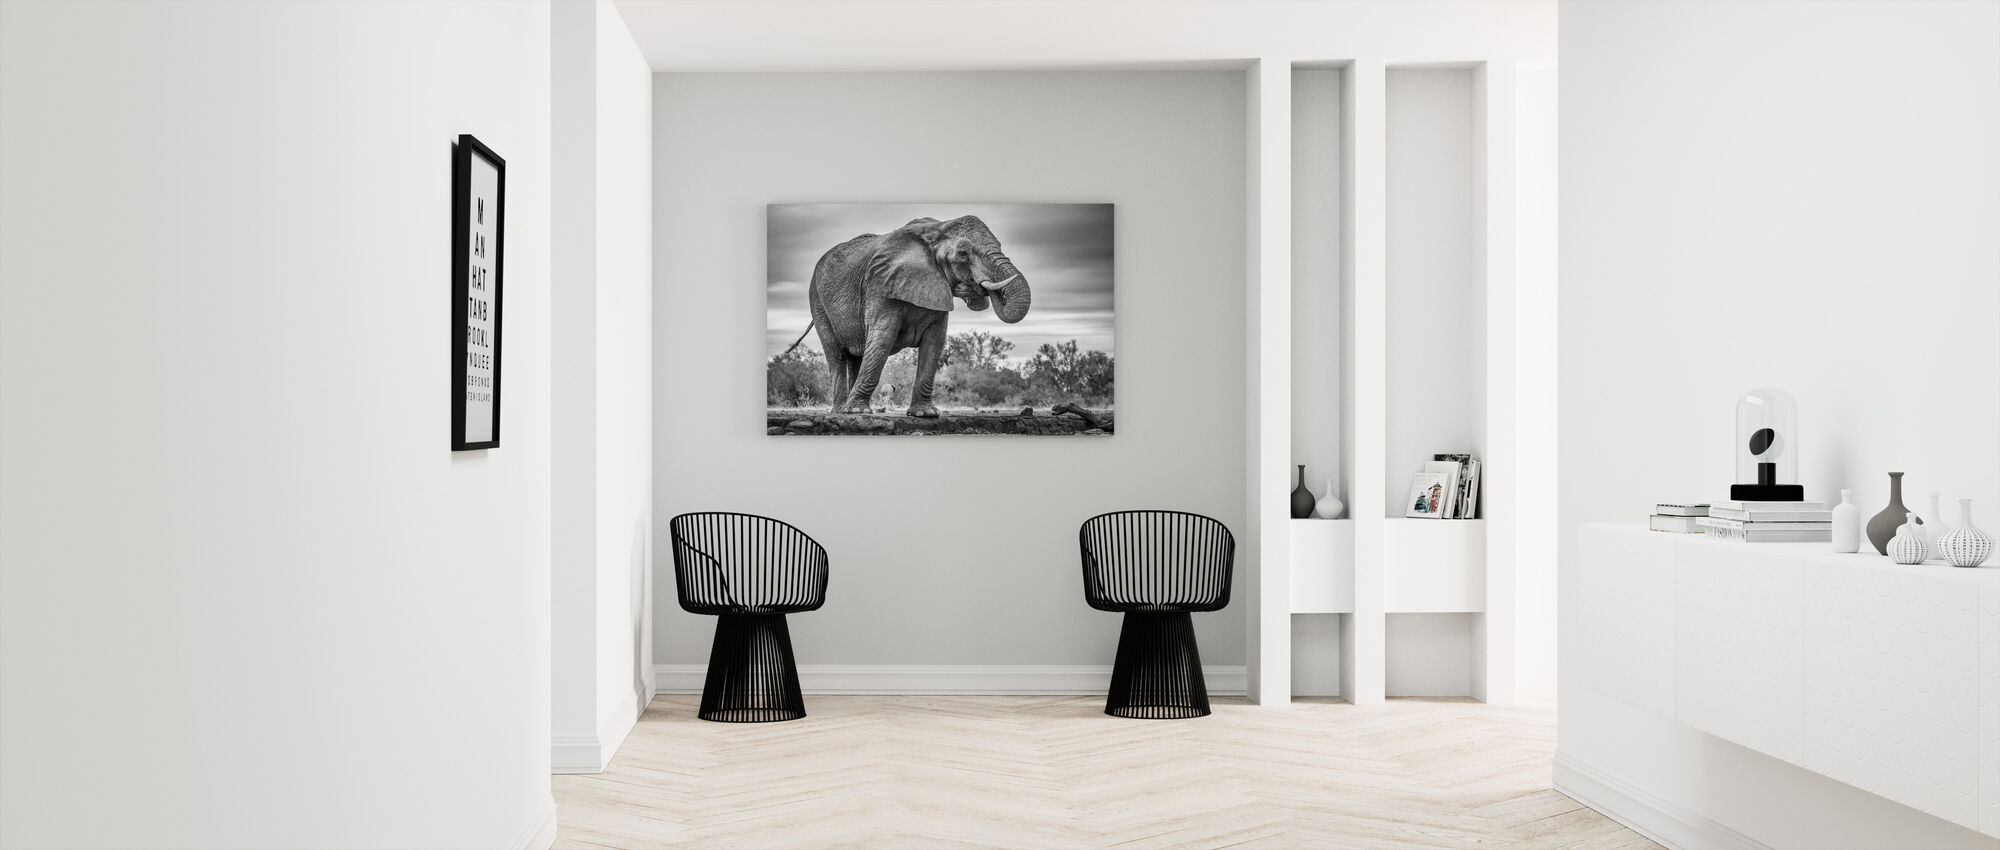 Staand Trots - Canvas print - Gang